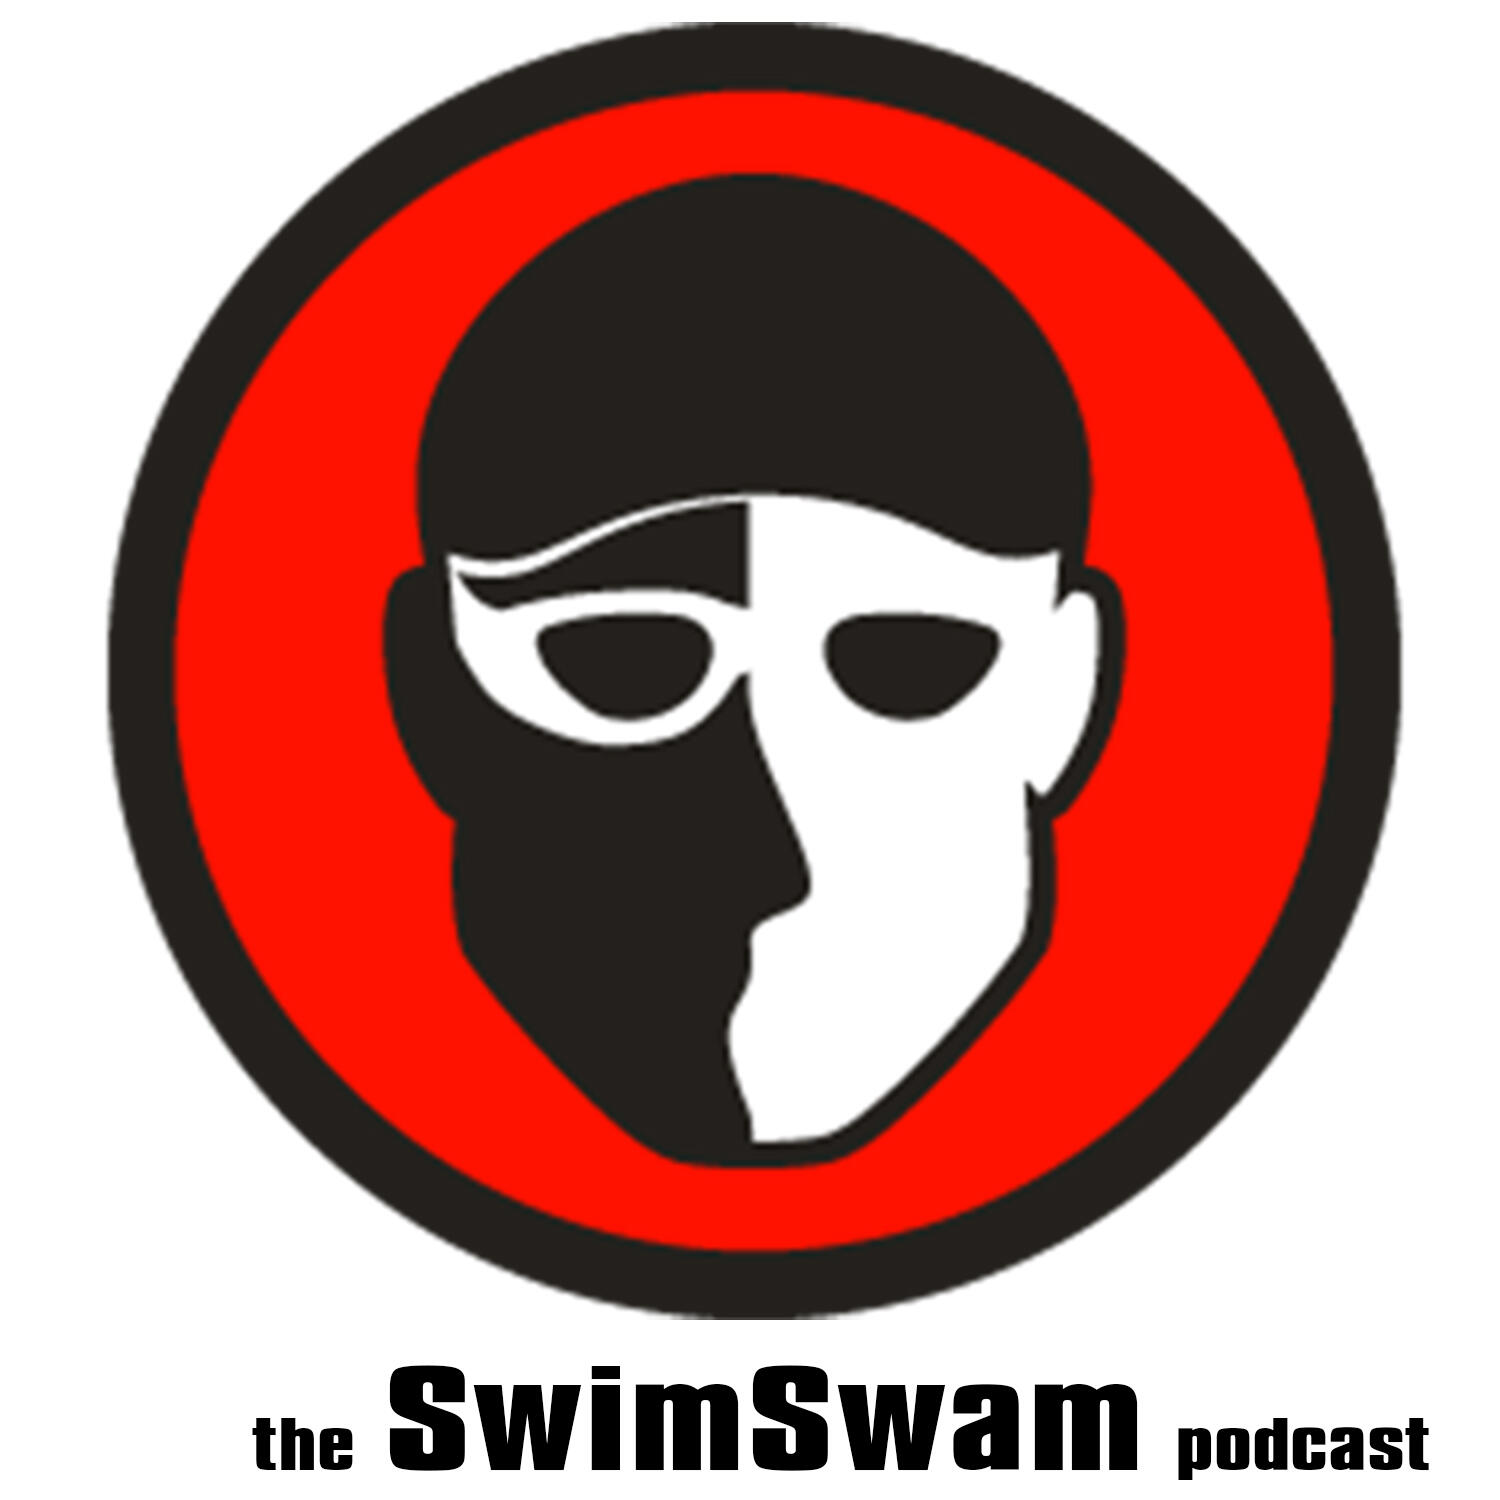 The SwimSwam Podcast